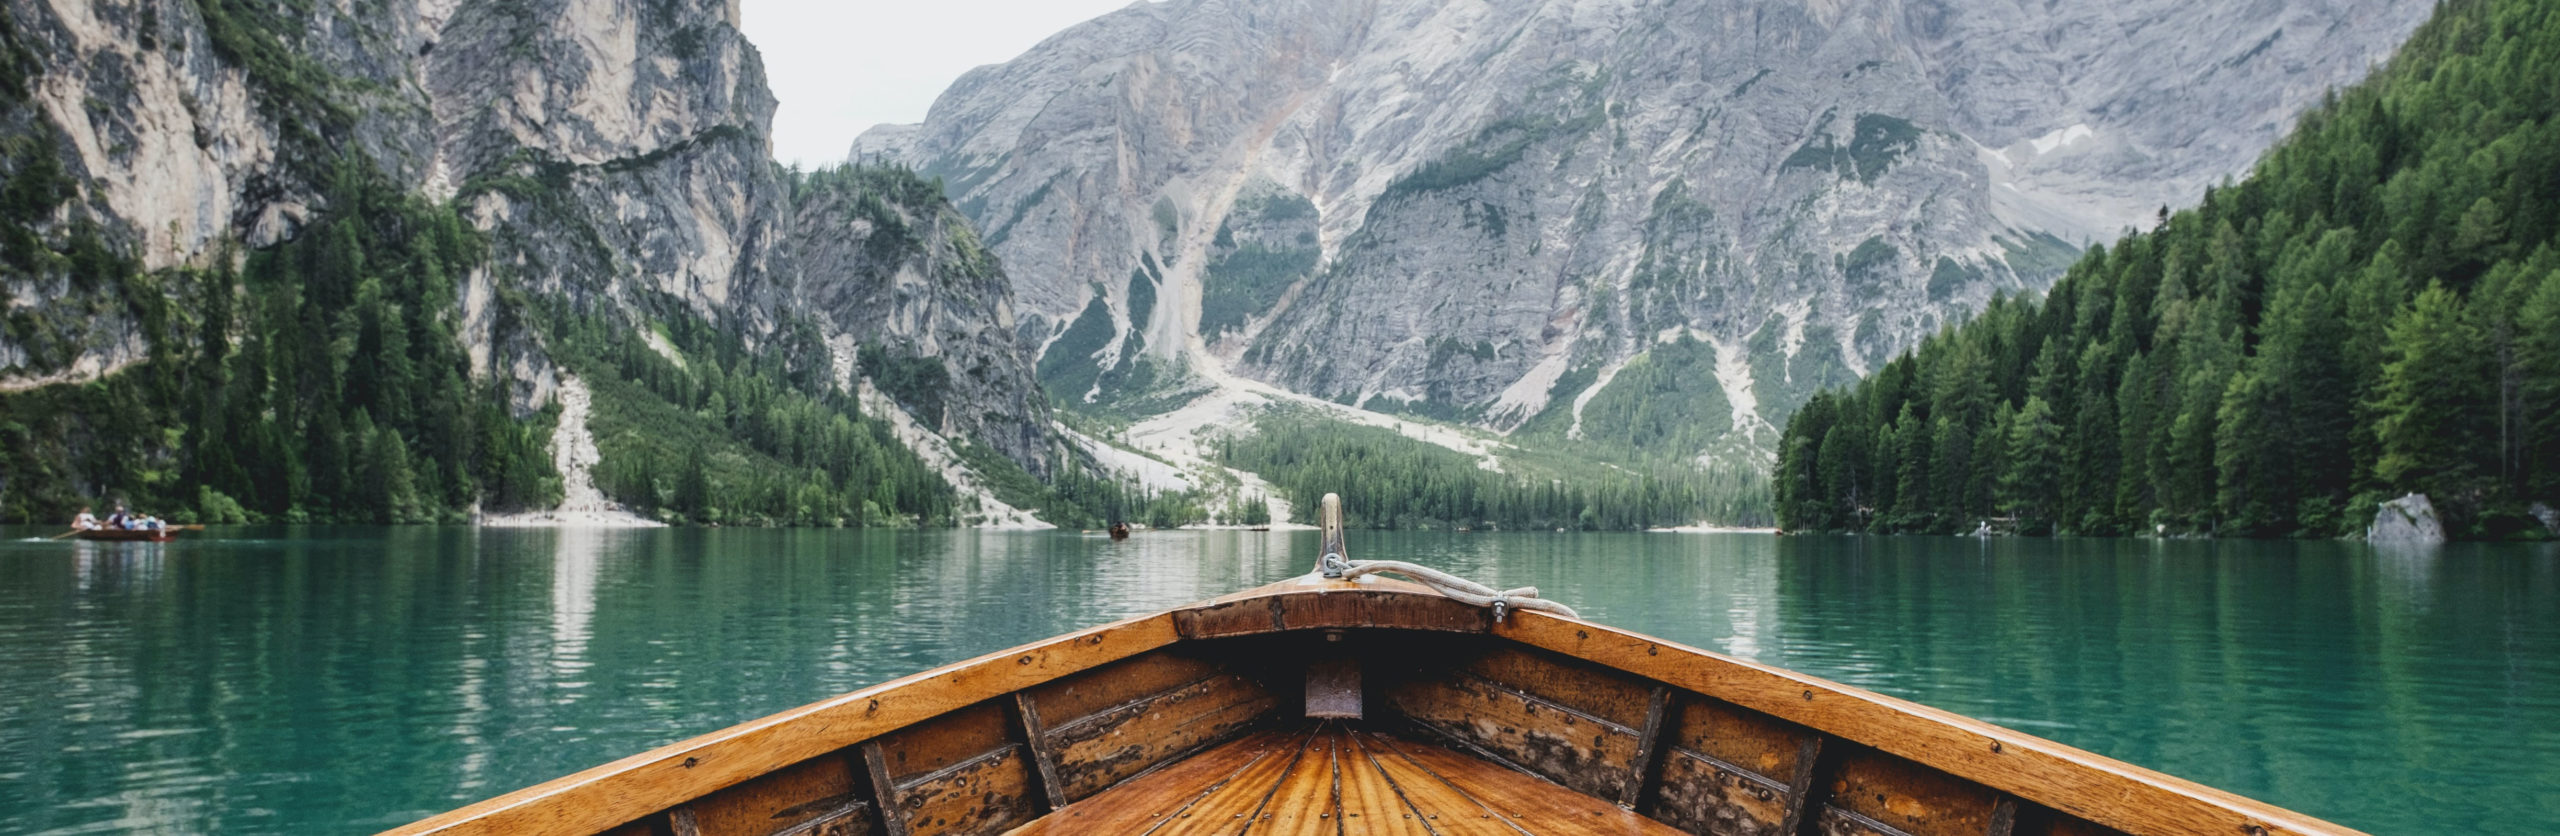 5 Of The World's Top Travel Influencers